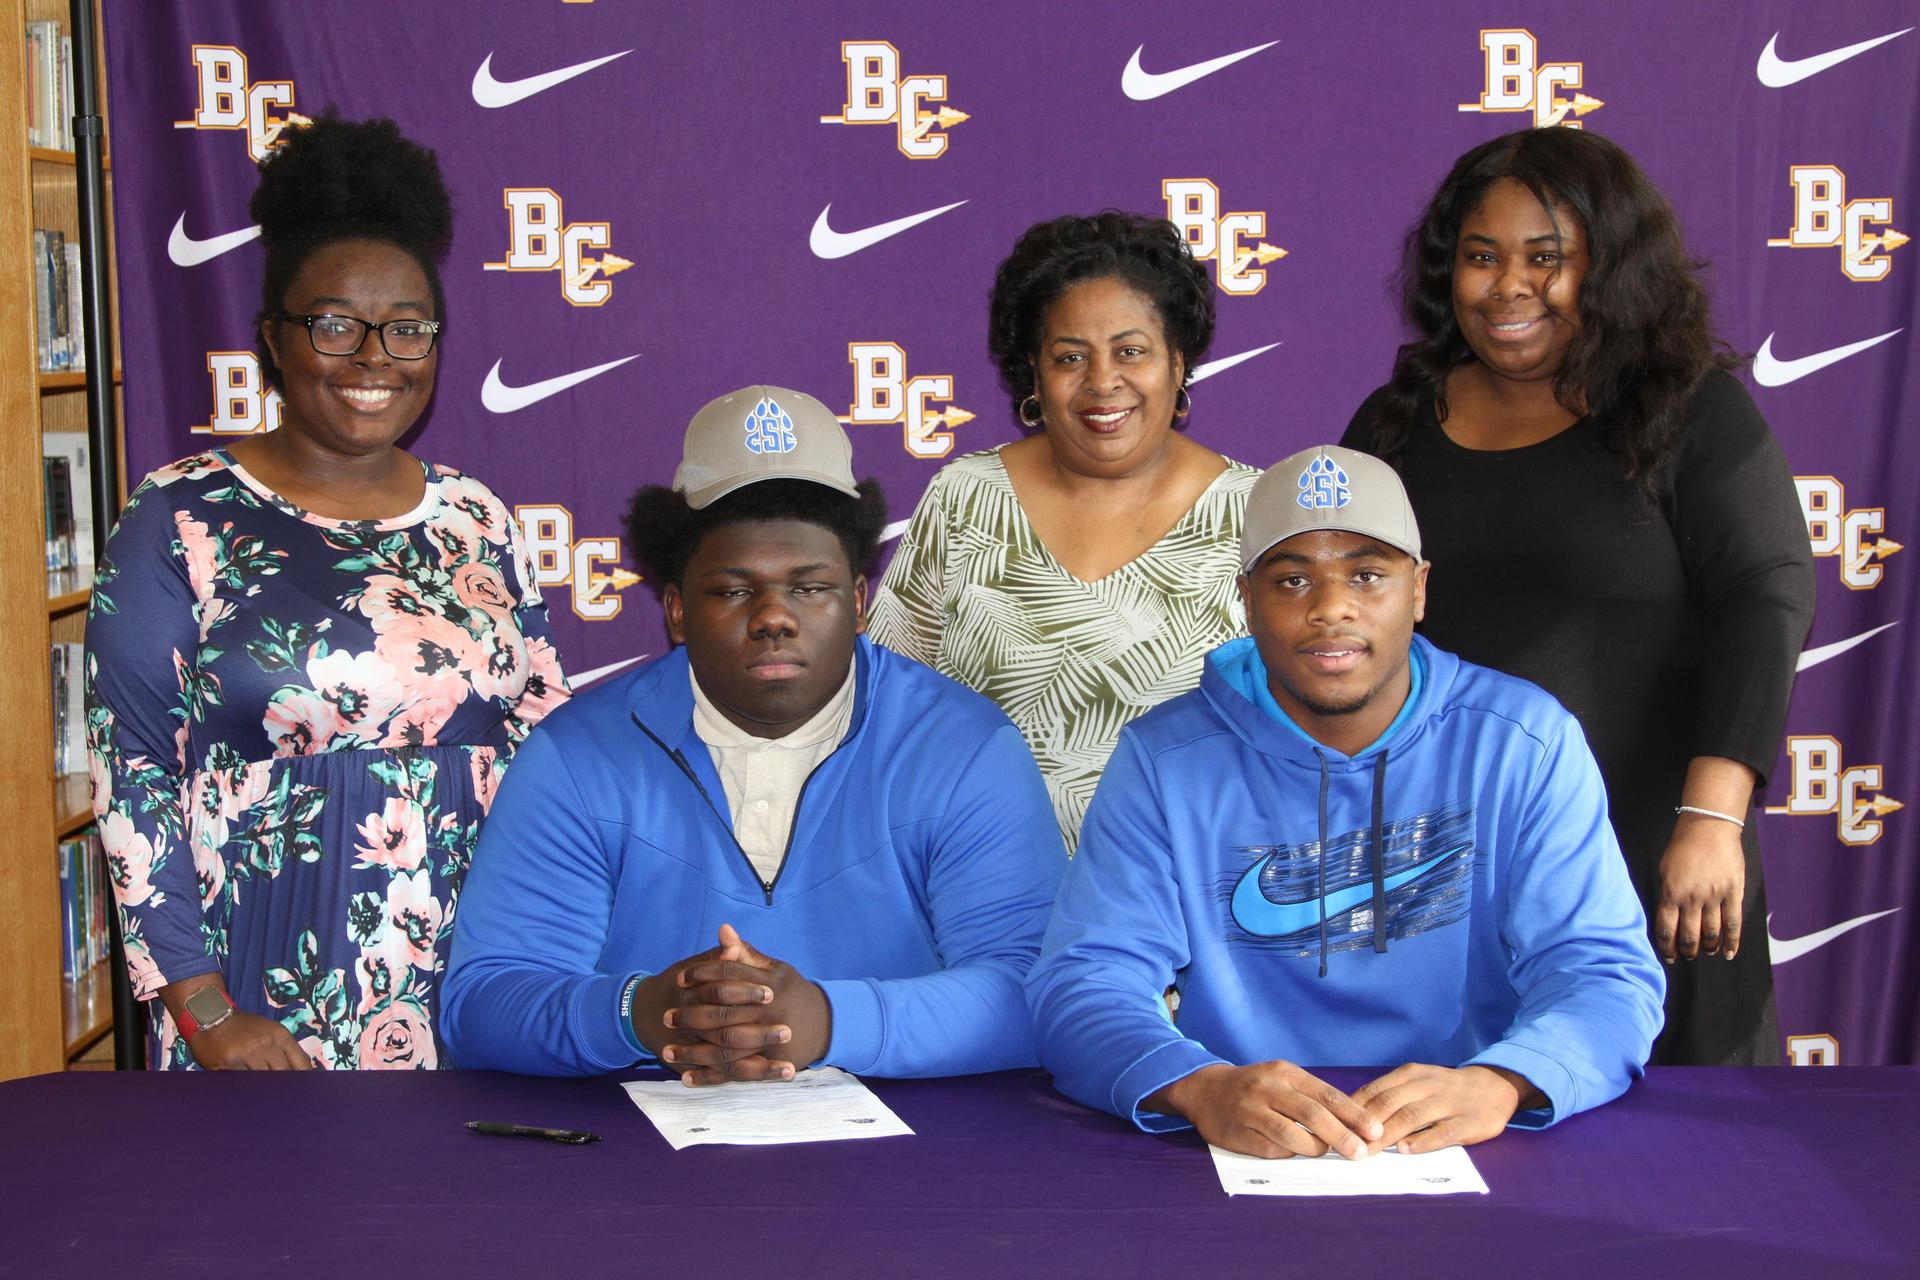 Noah Dukes and Dexter Marsh with family